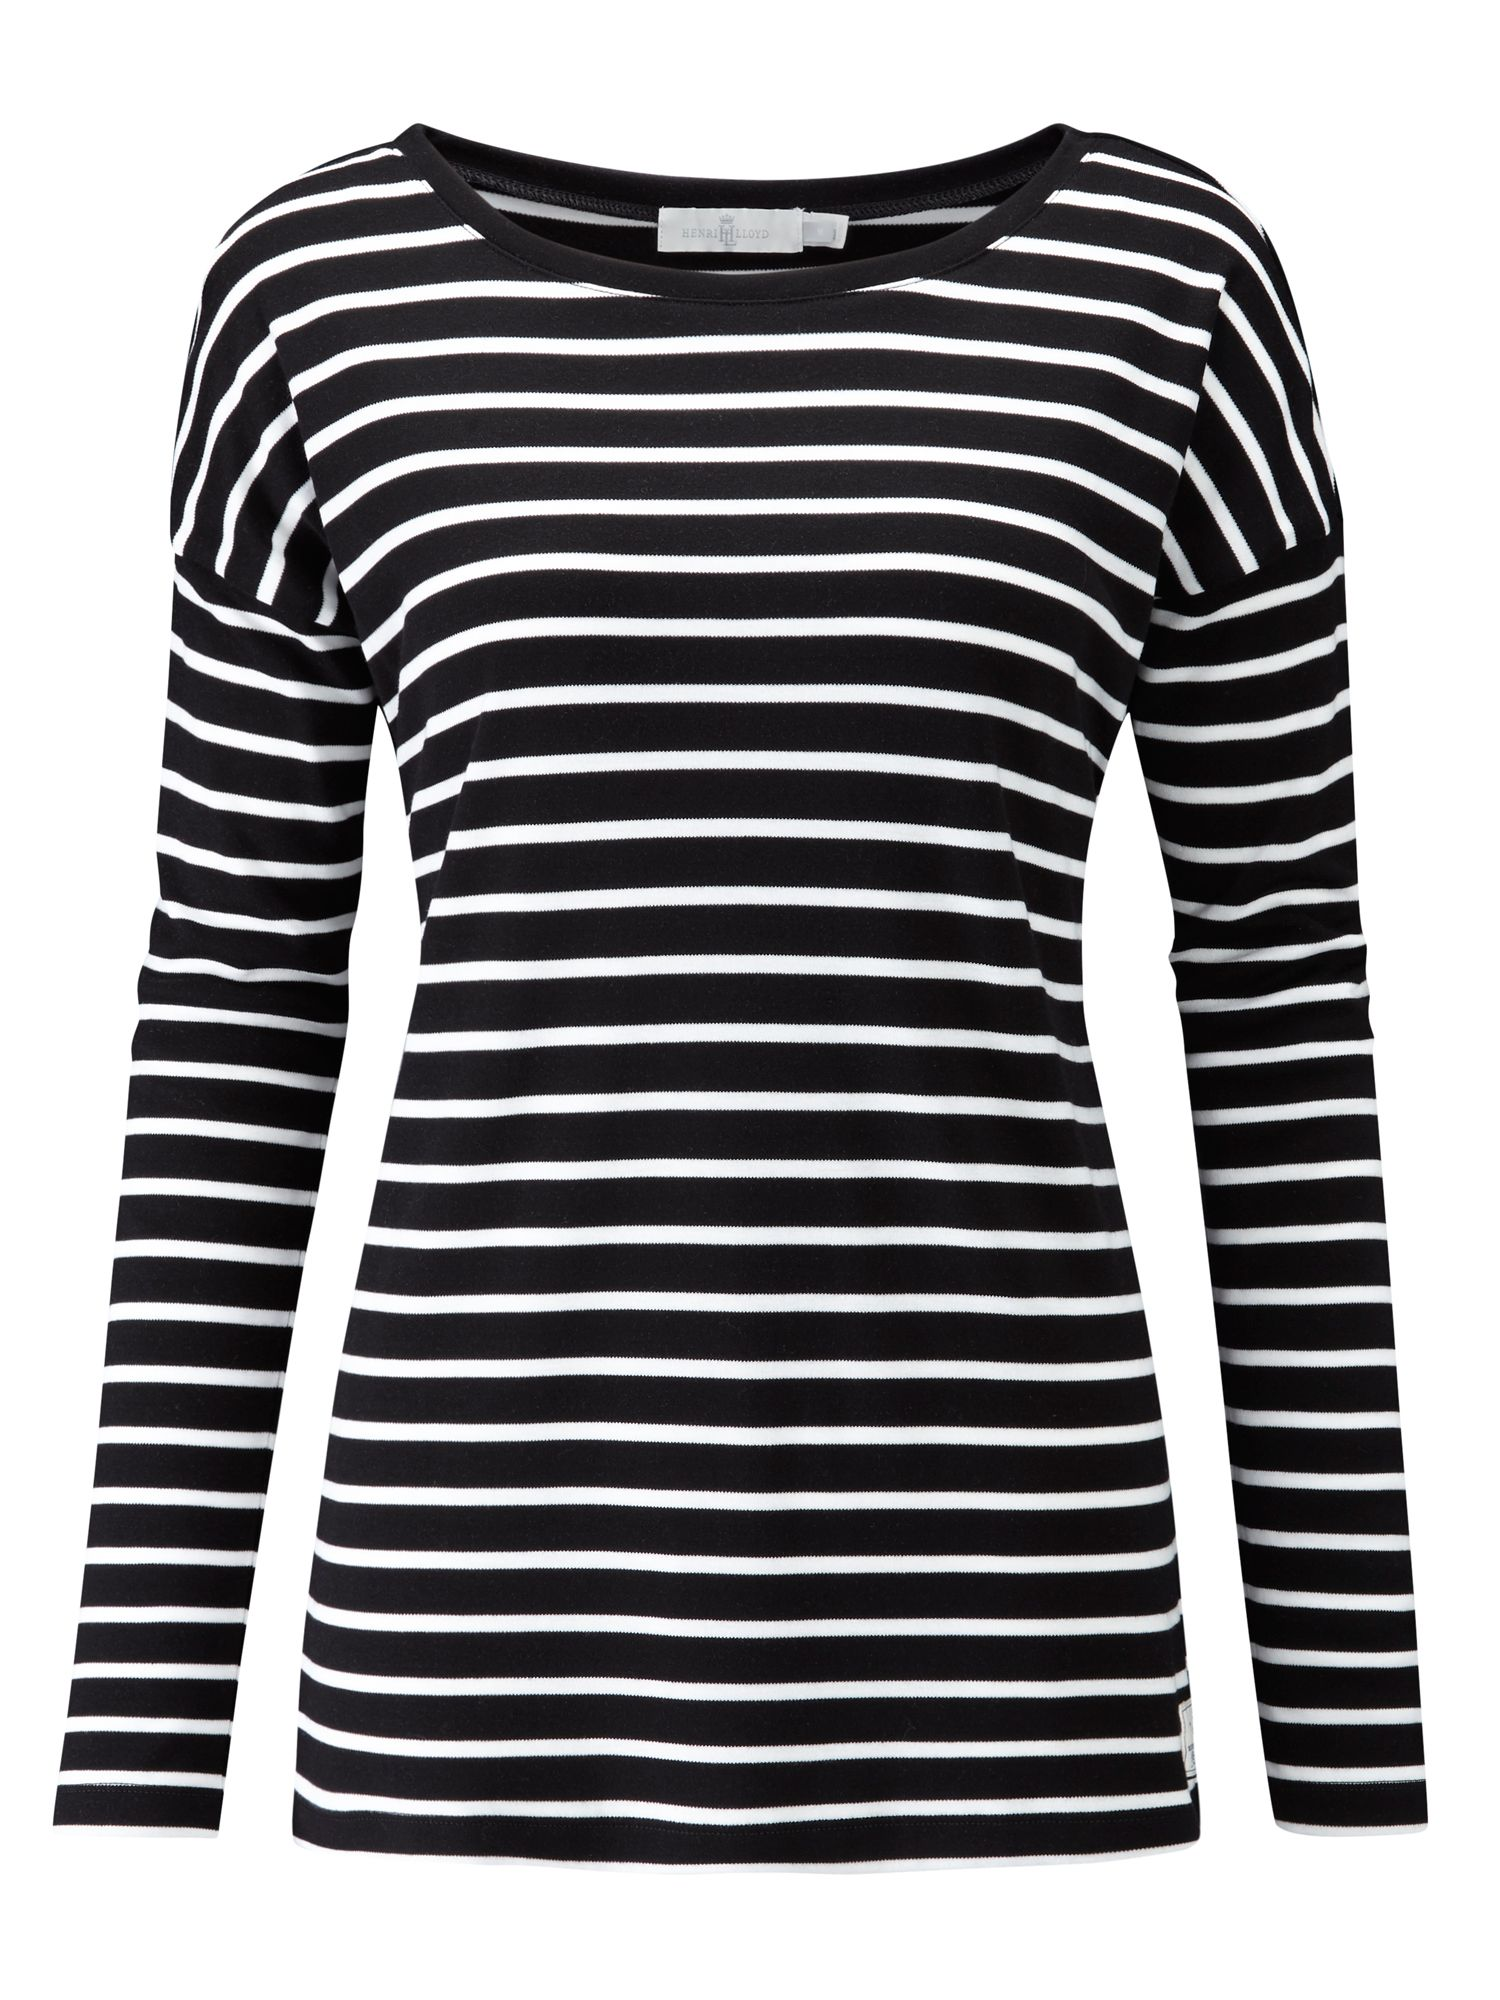 Henri Lloyd Breanna Striped Tee, Black